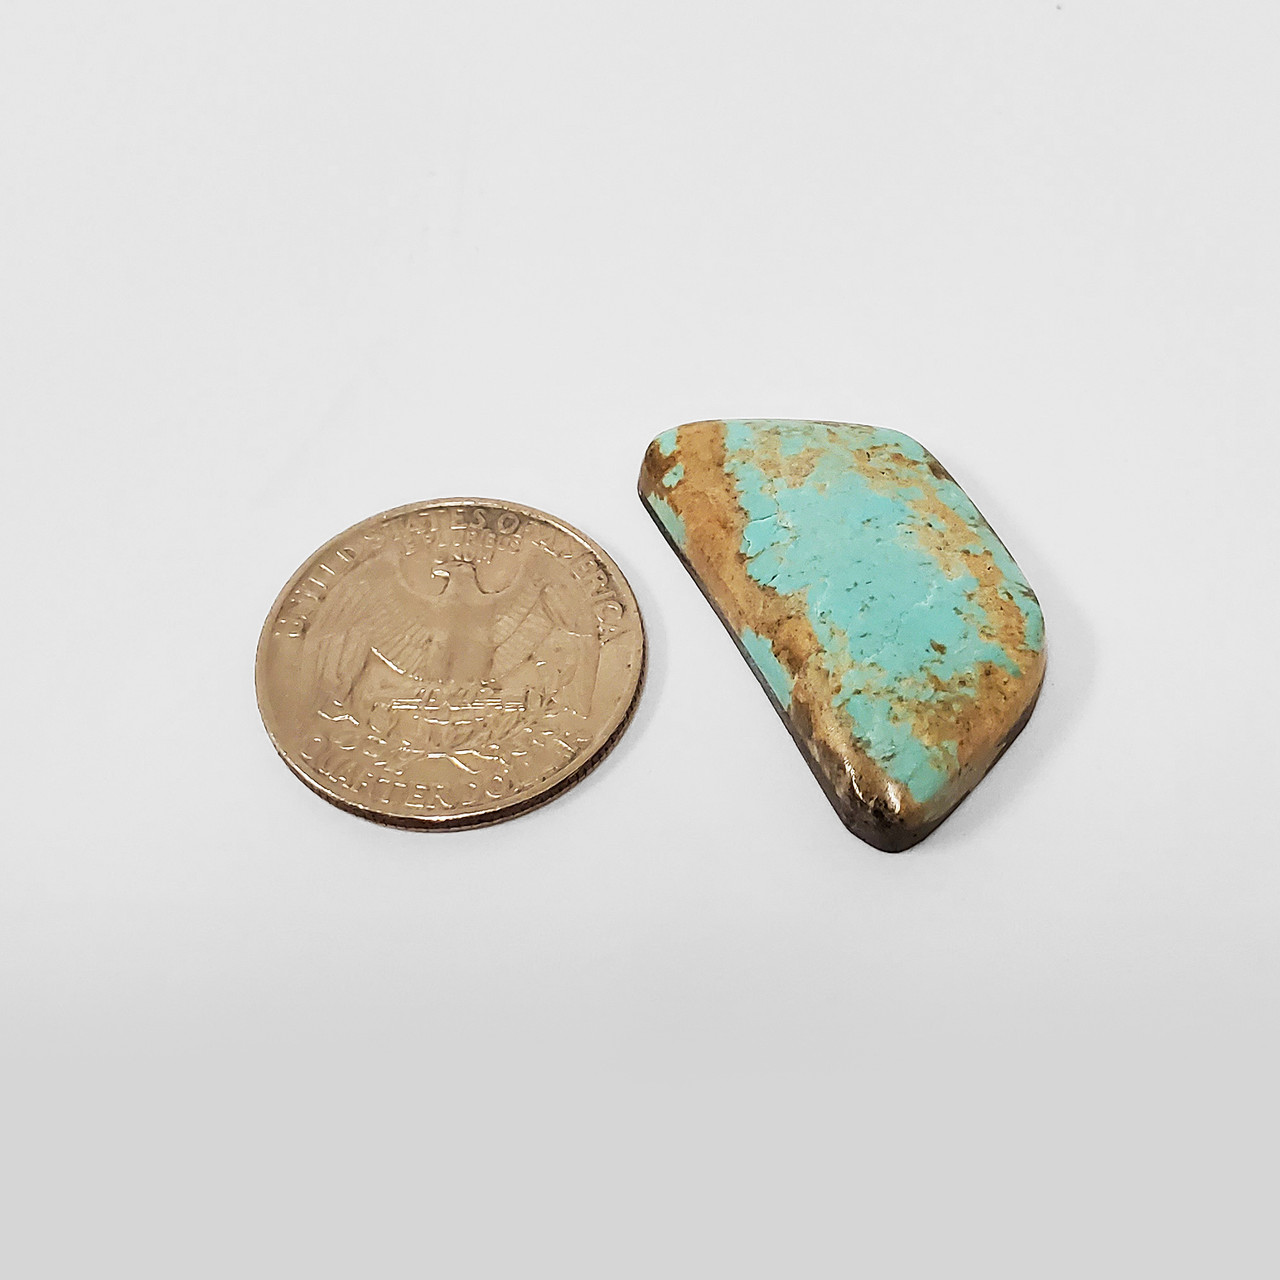 Natural #8 Turquoise 29 Carat Cabochon Gemstone for Jewelry Making DIY